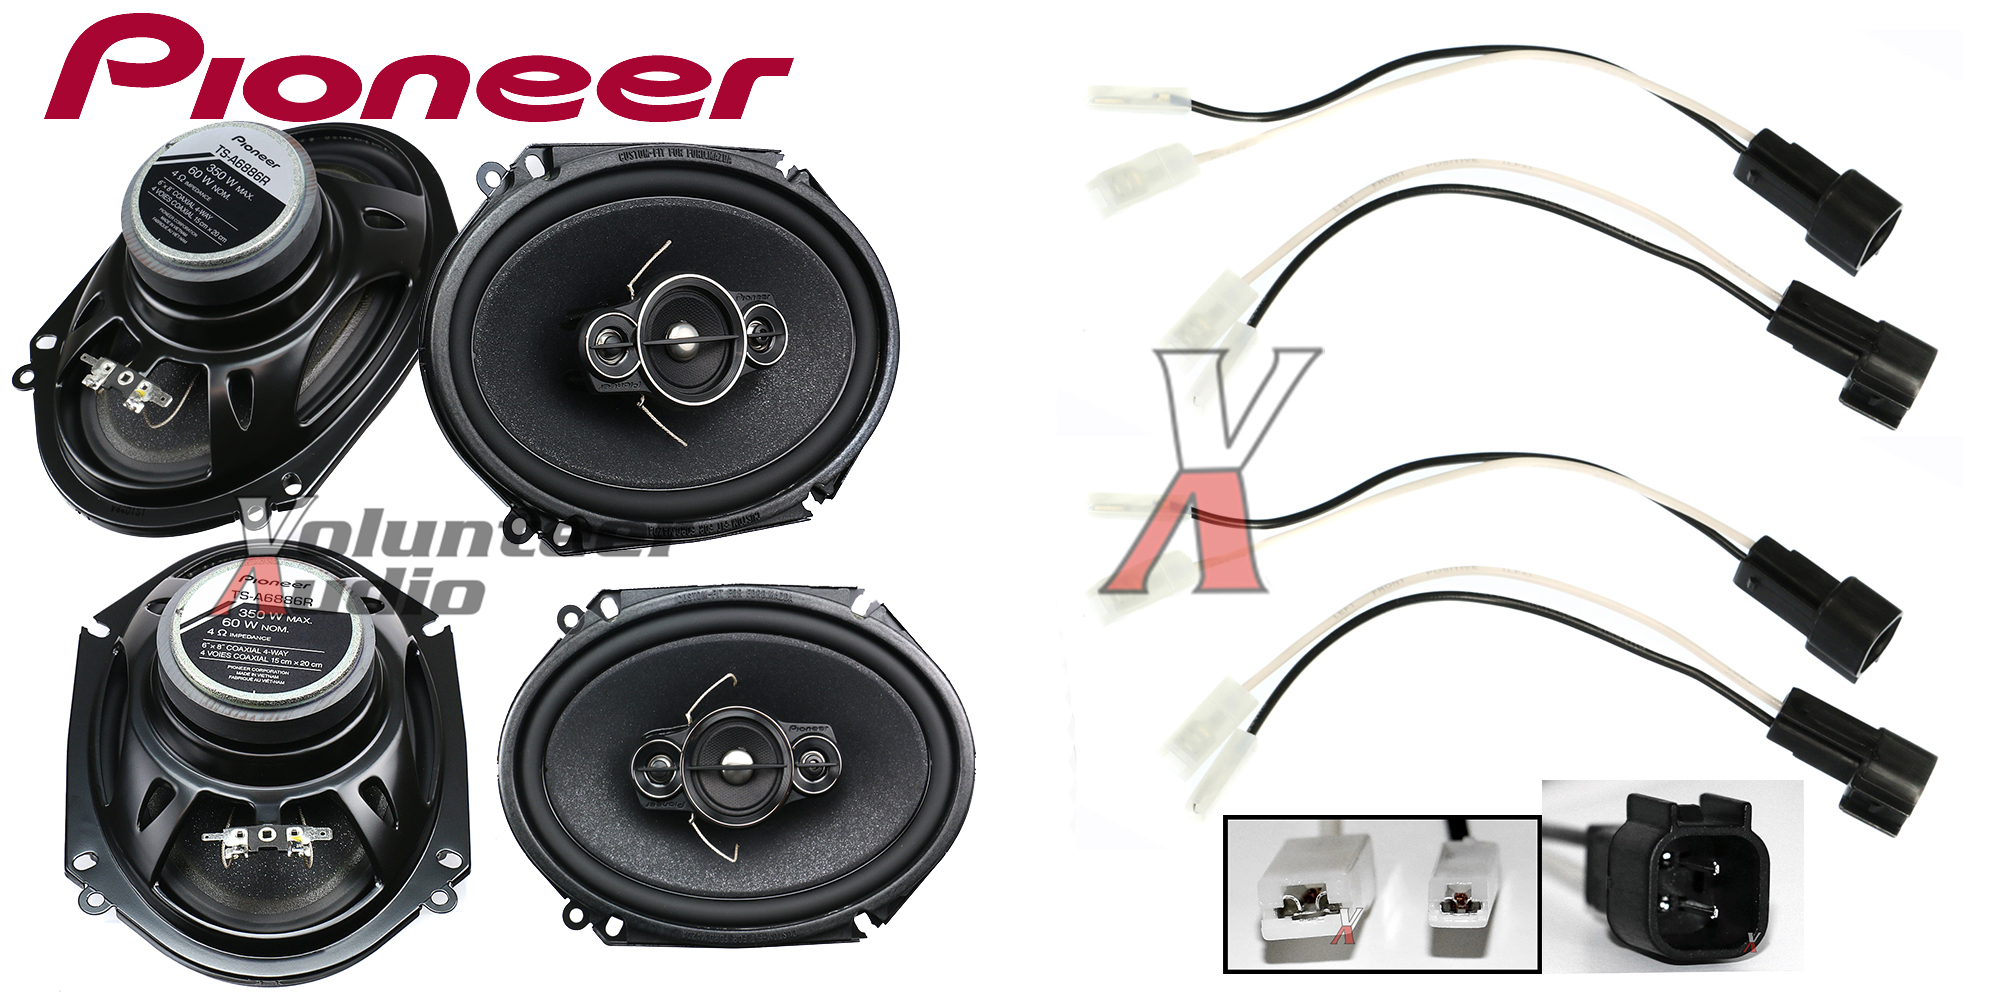 Pioneer Ts-A6886R 6X8 Speakers With Wiring Harness Fits Ford 2 Pairs on mazda stereo wiring diagram, mazda alternator wiring, mazda purge valve, mazda 2 lights, mazda maf sensor, mazda idiot lights, mazda headlight cover, mazda wiring housing, mazda timing belt, mazda rear axle assembly, mazda transmission cooler, mazda rear end, mazda throttle body, mazda fuel sending unit, mazda trunk latch, mazda wiring color codes, mazda solenoid, mazda wiring schematics, mazda 4 speed transmission, mazda motor,